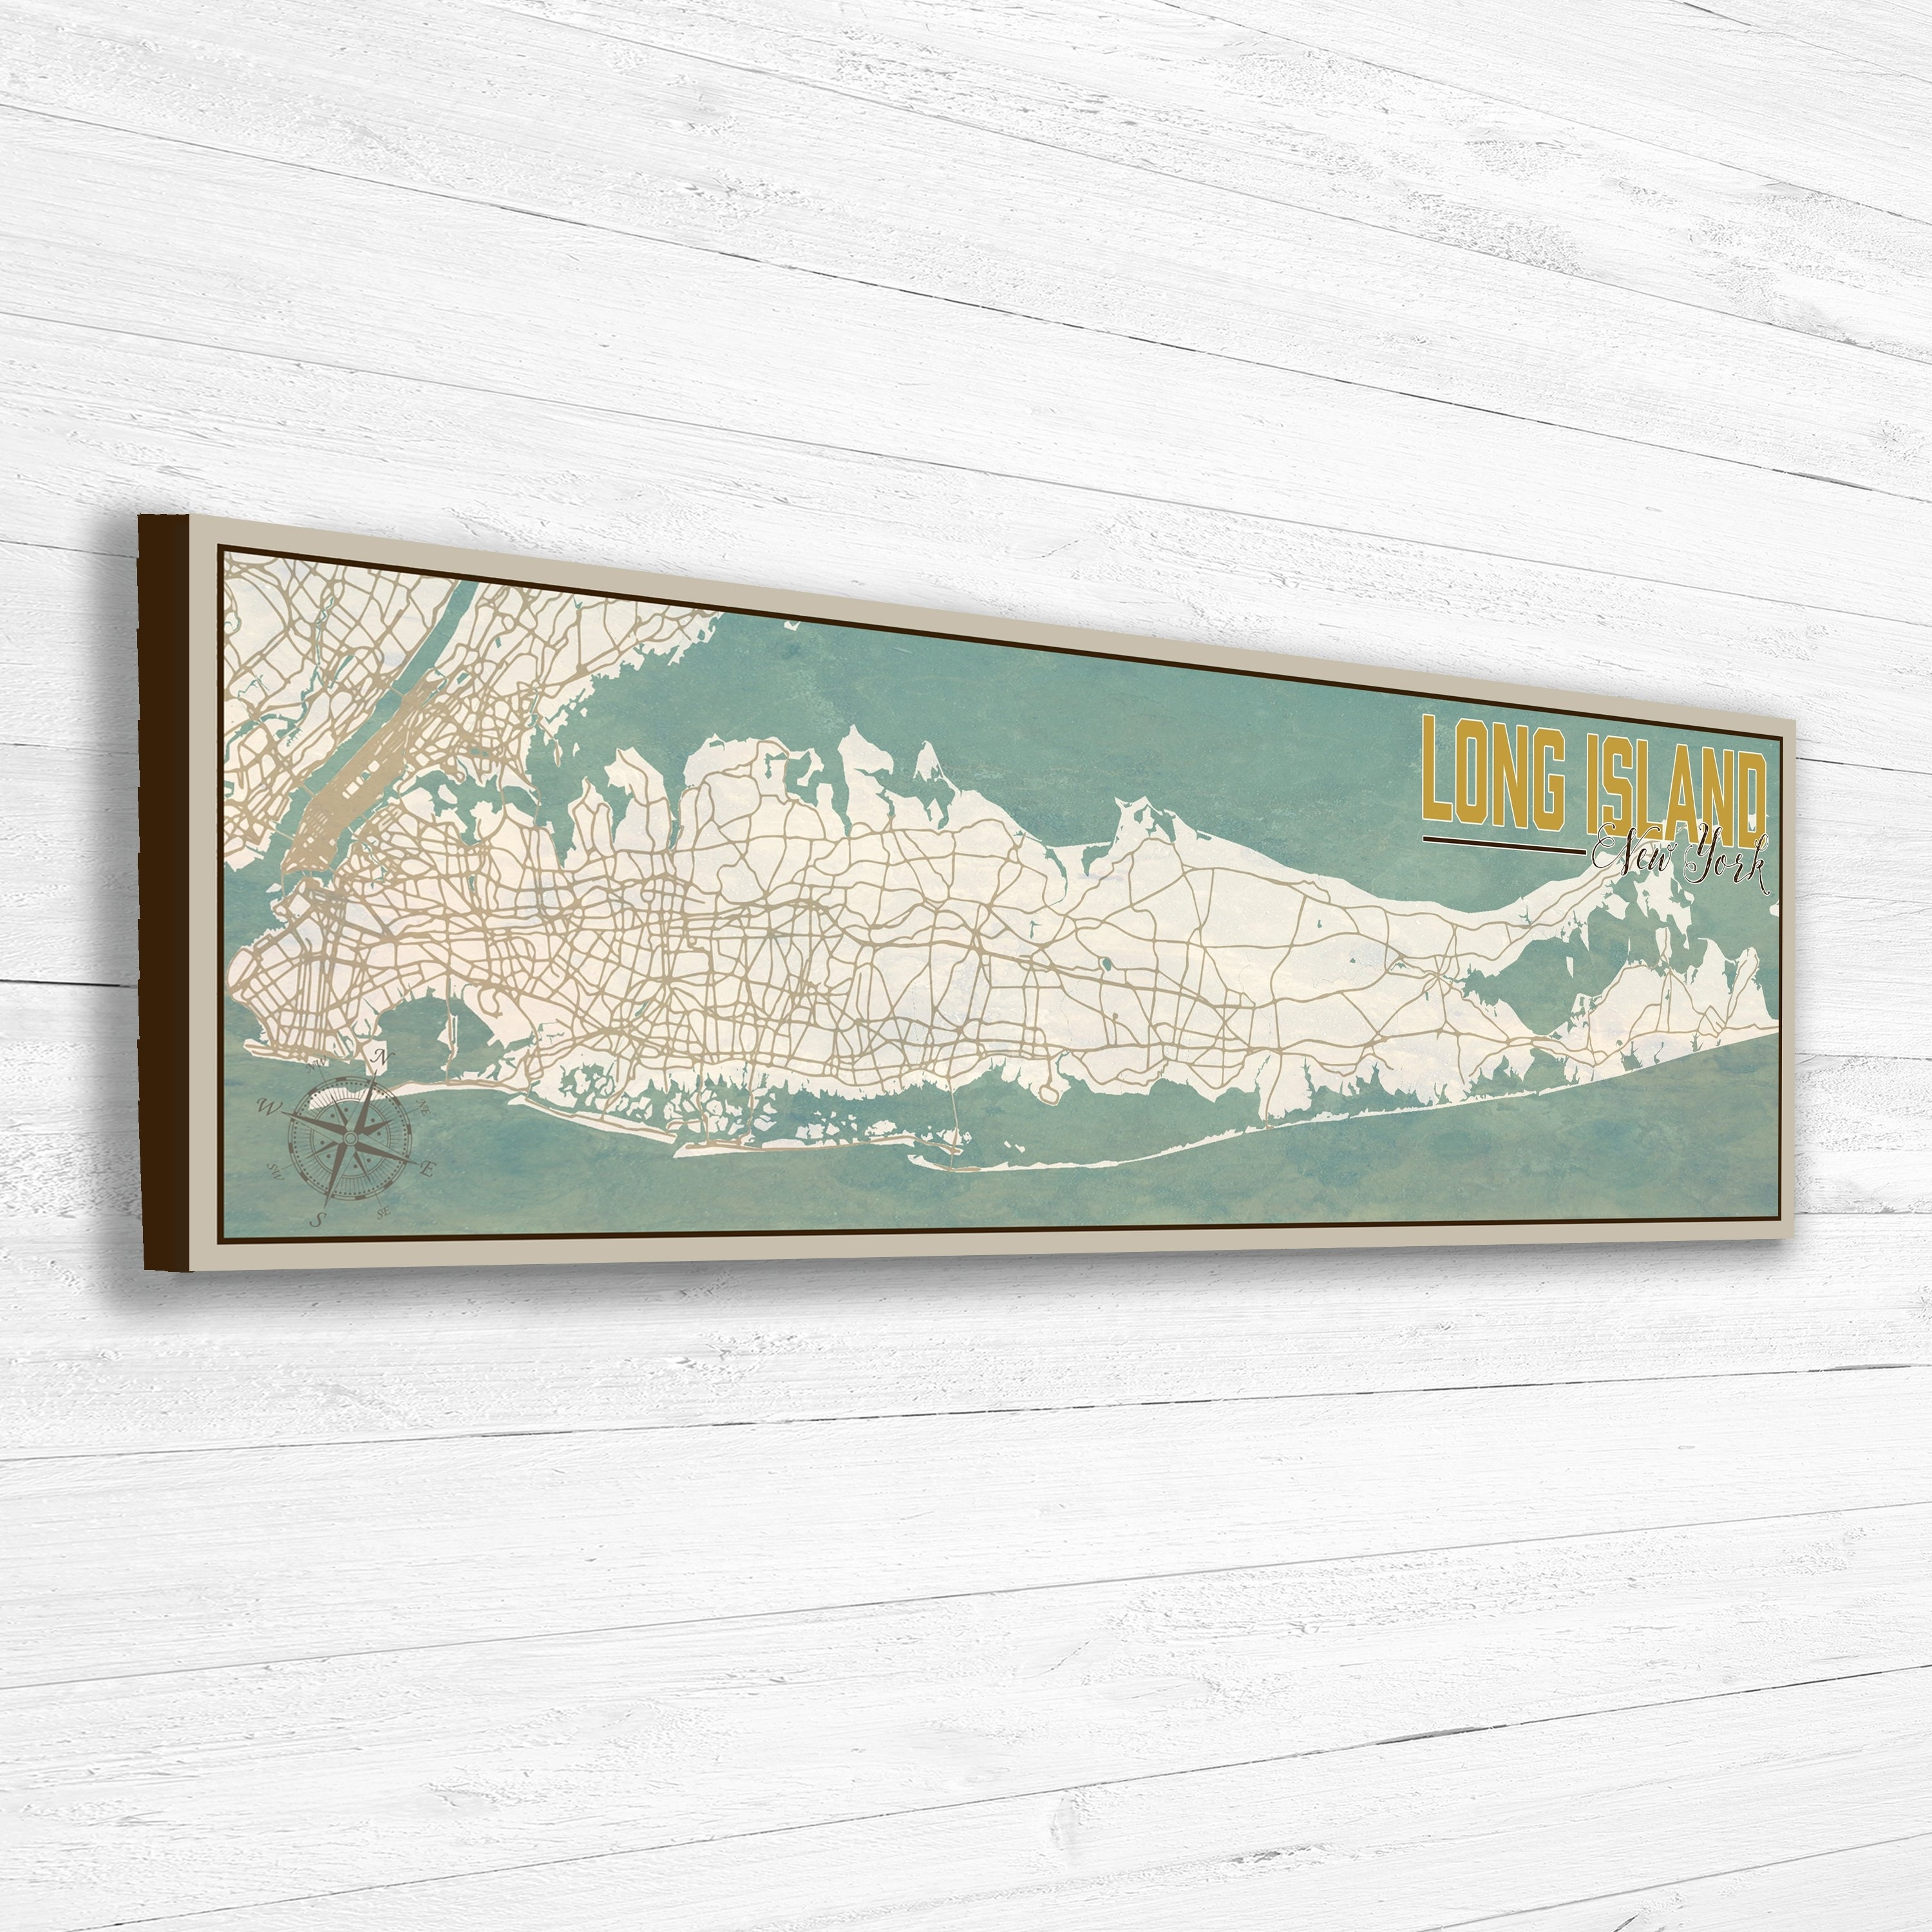 Long Island Ny Wall Art Map Framed North Fork Vintage Outdoor Inside 2018 Long Island Wall Art (View 4 of 20)